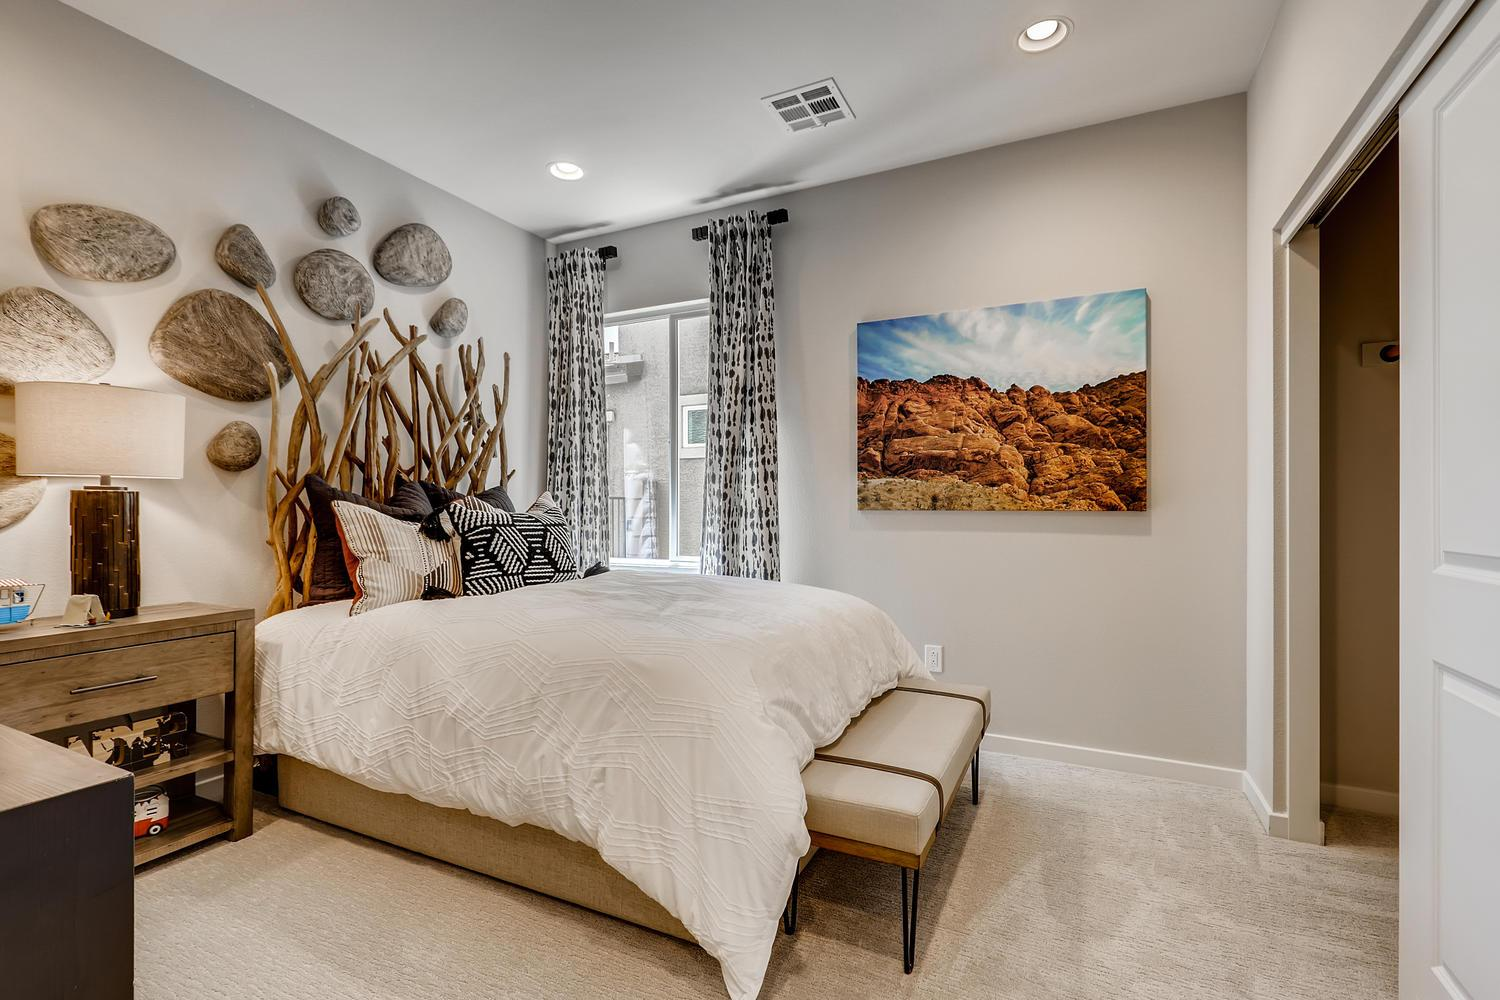 Bedroom featured in the Magnolia at Silverleaf By Taylor Morrison in Las Vegas, NV